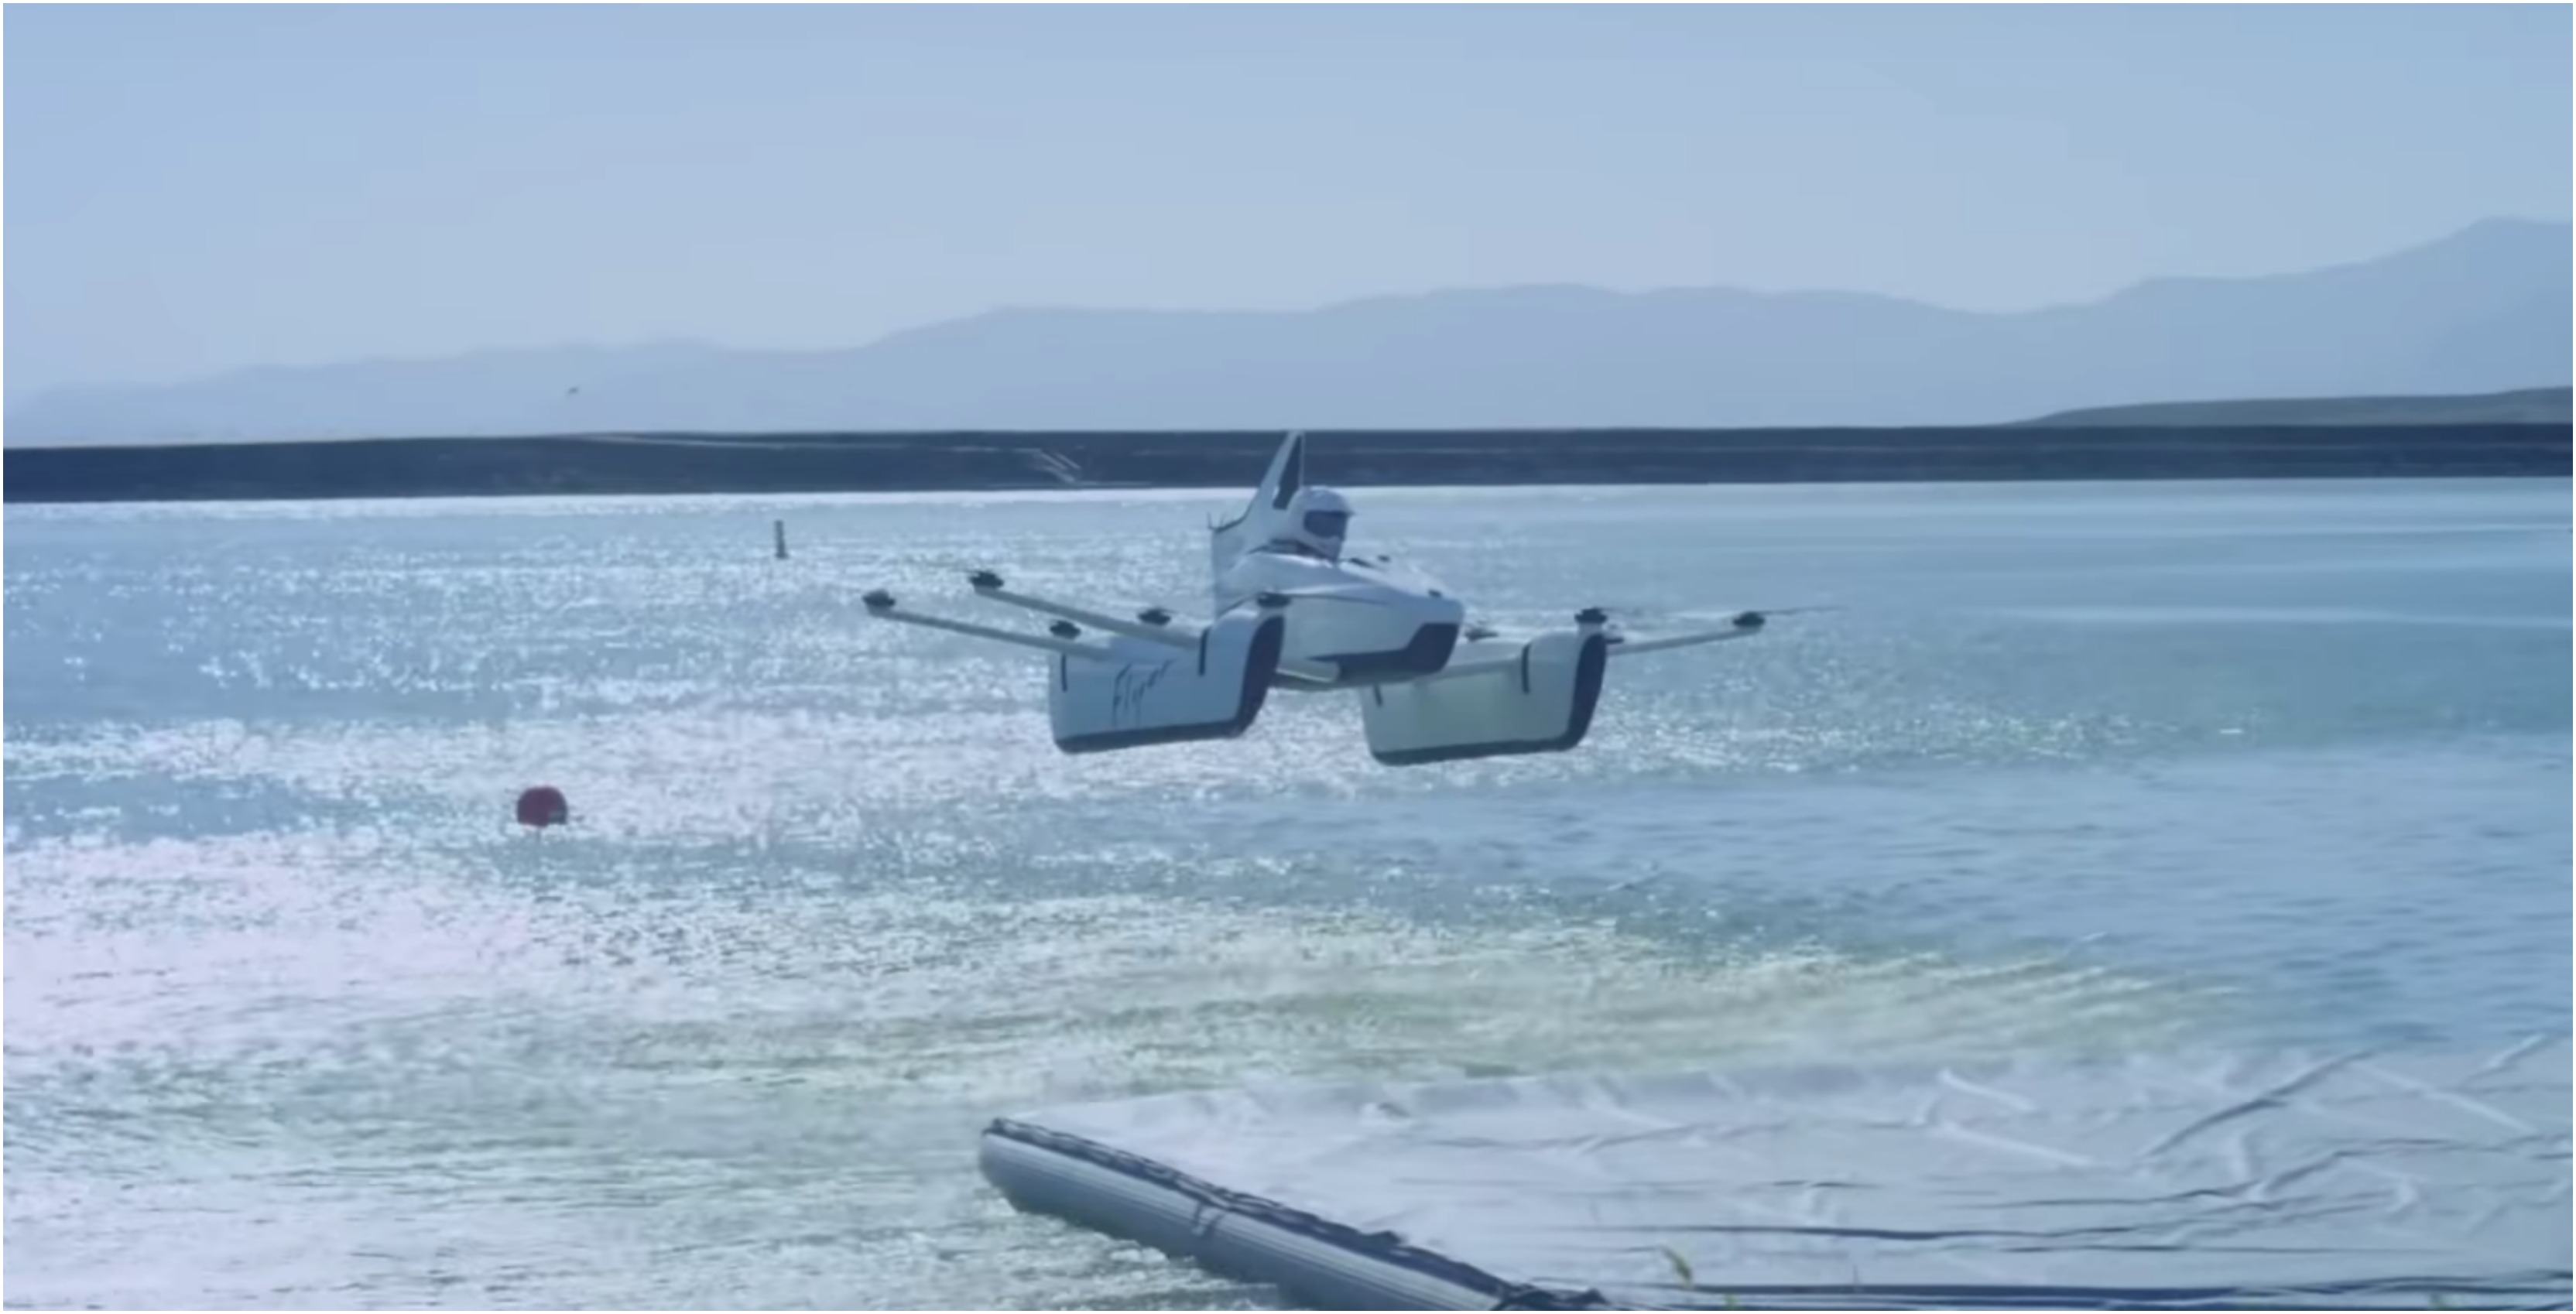 Kitty Hawk's 'Flyer' is an aircraft that takes 15 minutes to learn